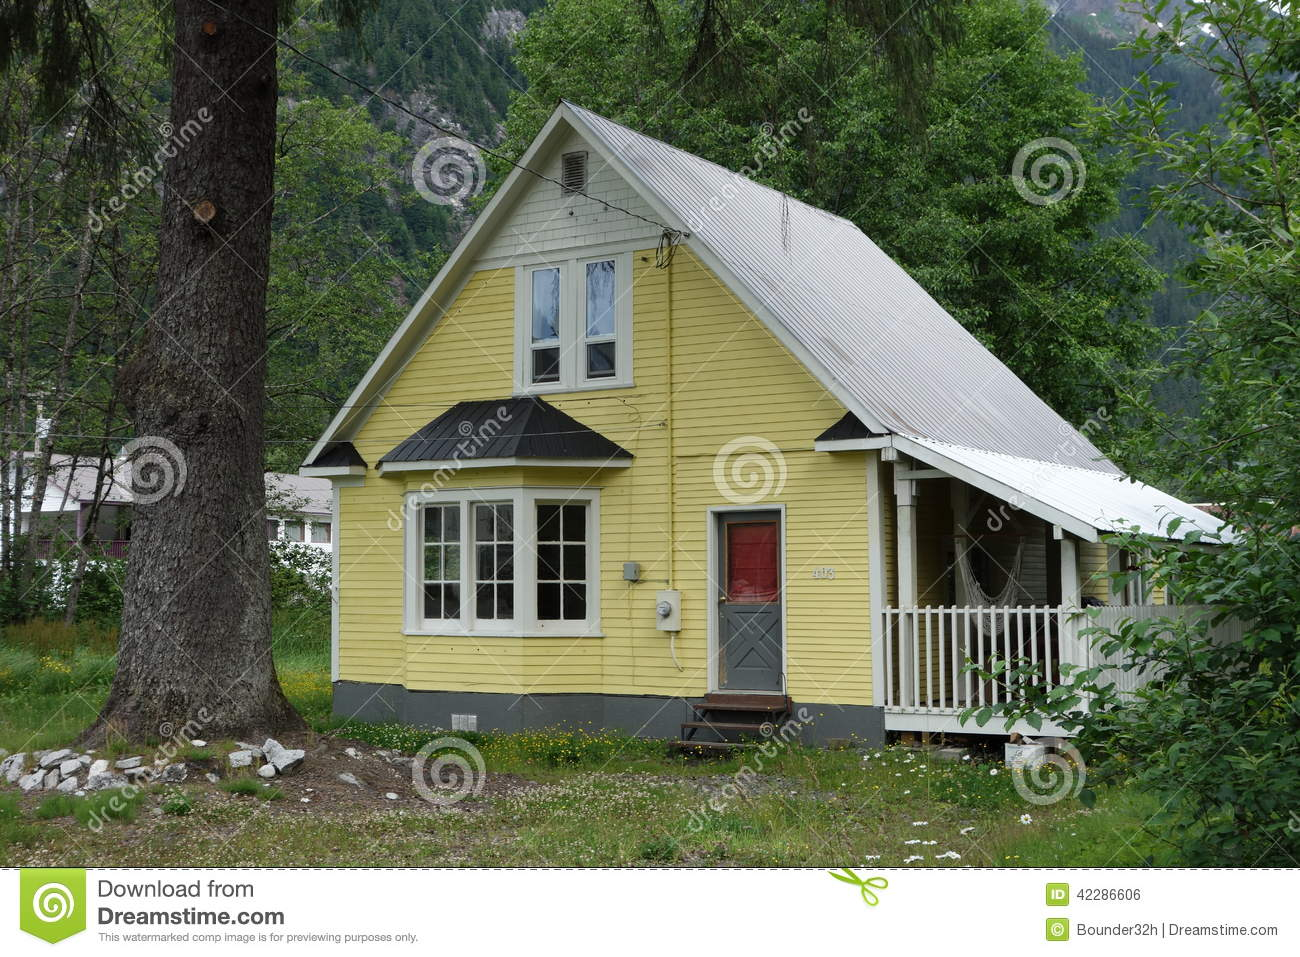 Une maison simple au canada de stewart photo stock image 42286606 for Photo de maison au canada